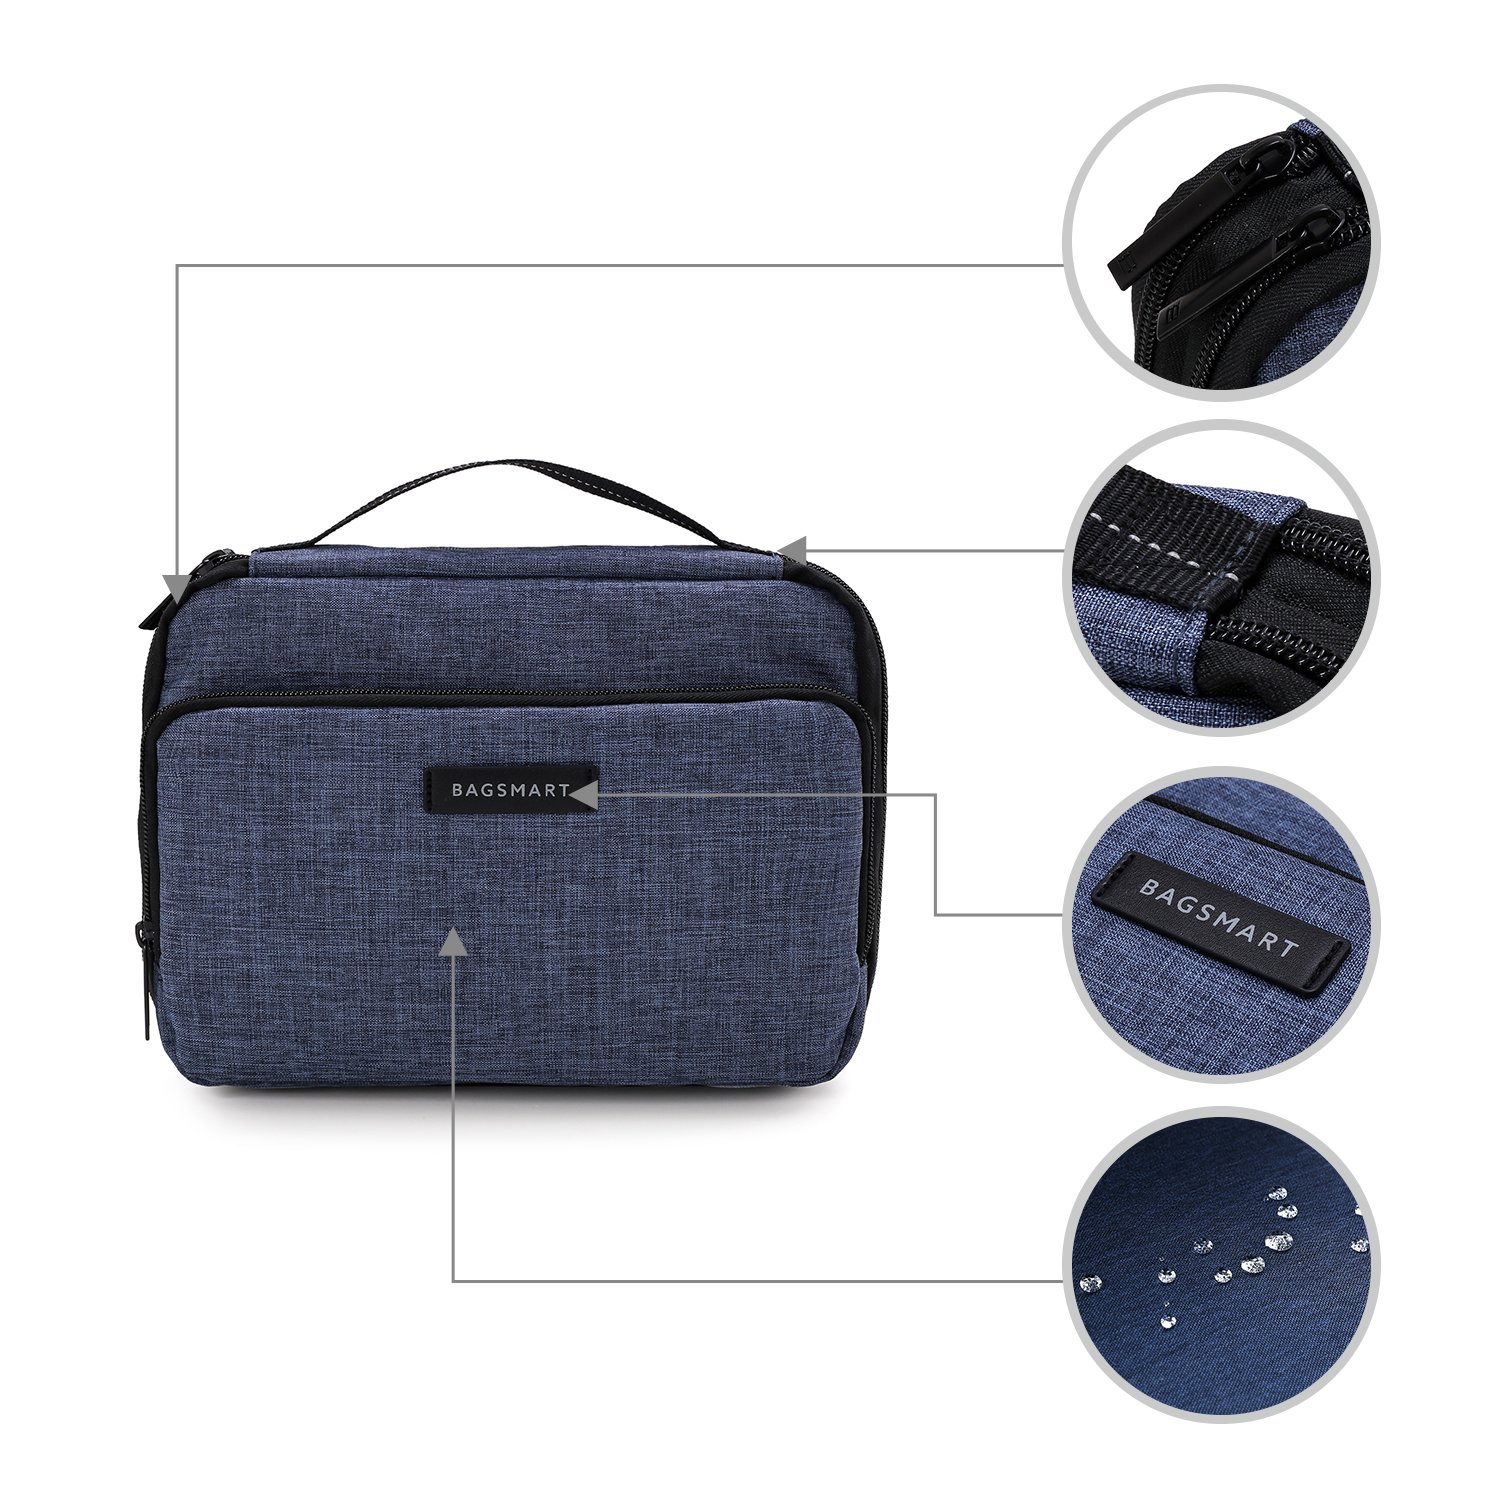 BAGSMART 3-layer Travel Electronics Cable Organizer Bag for 9.7'' iPad, Hard Drives, Cables, Charger, Kindle, Blue by BAGSMART (Image #6)